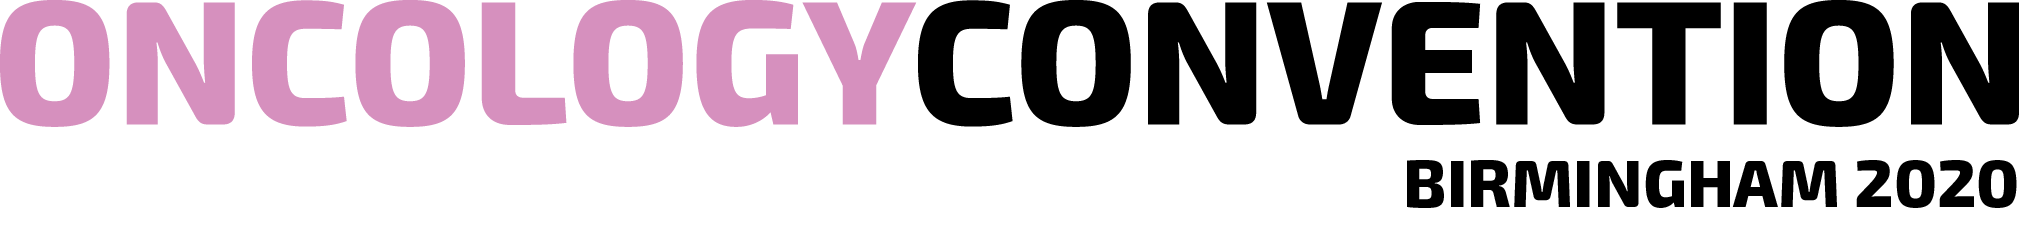 oncology_2020_Logo.png